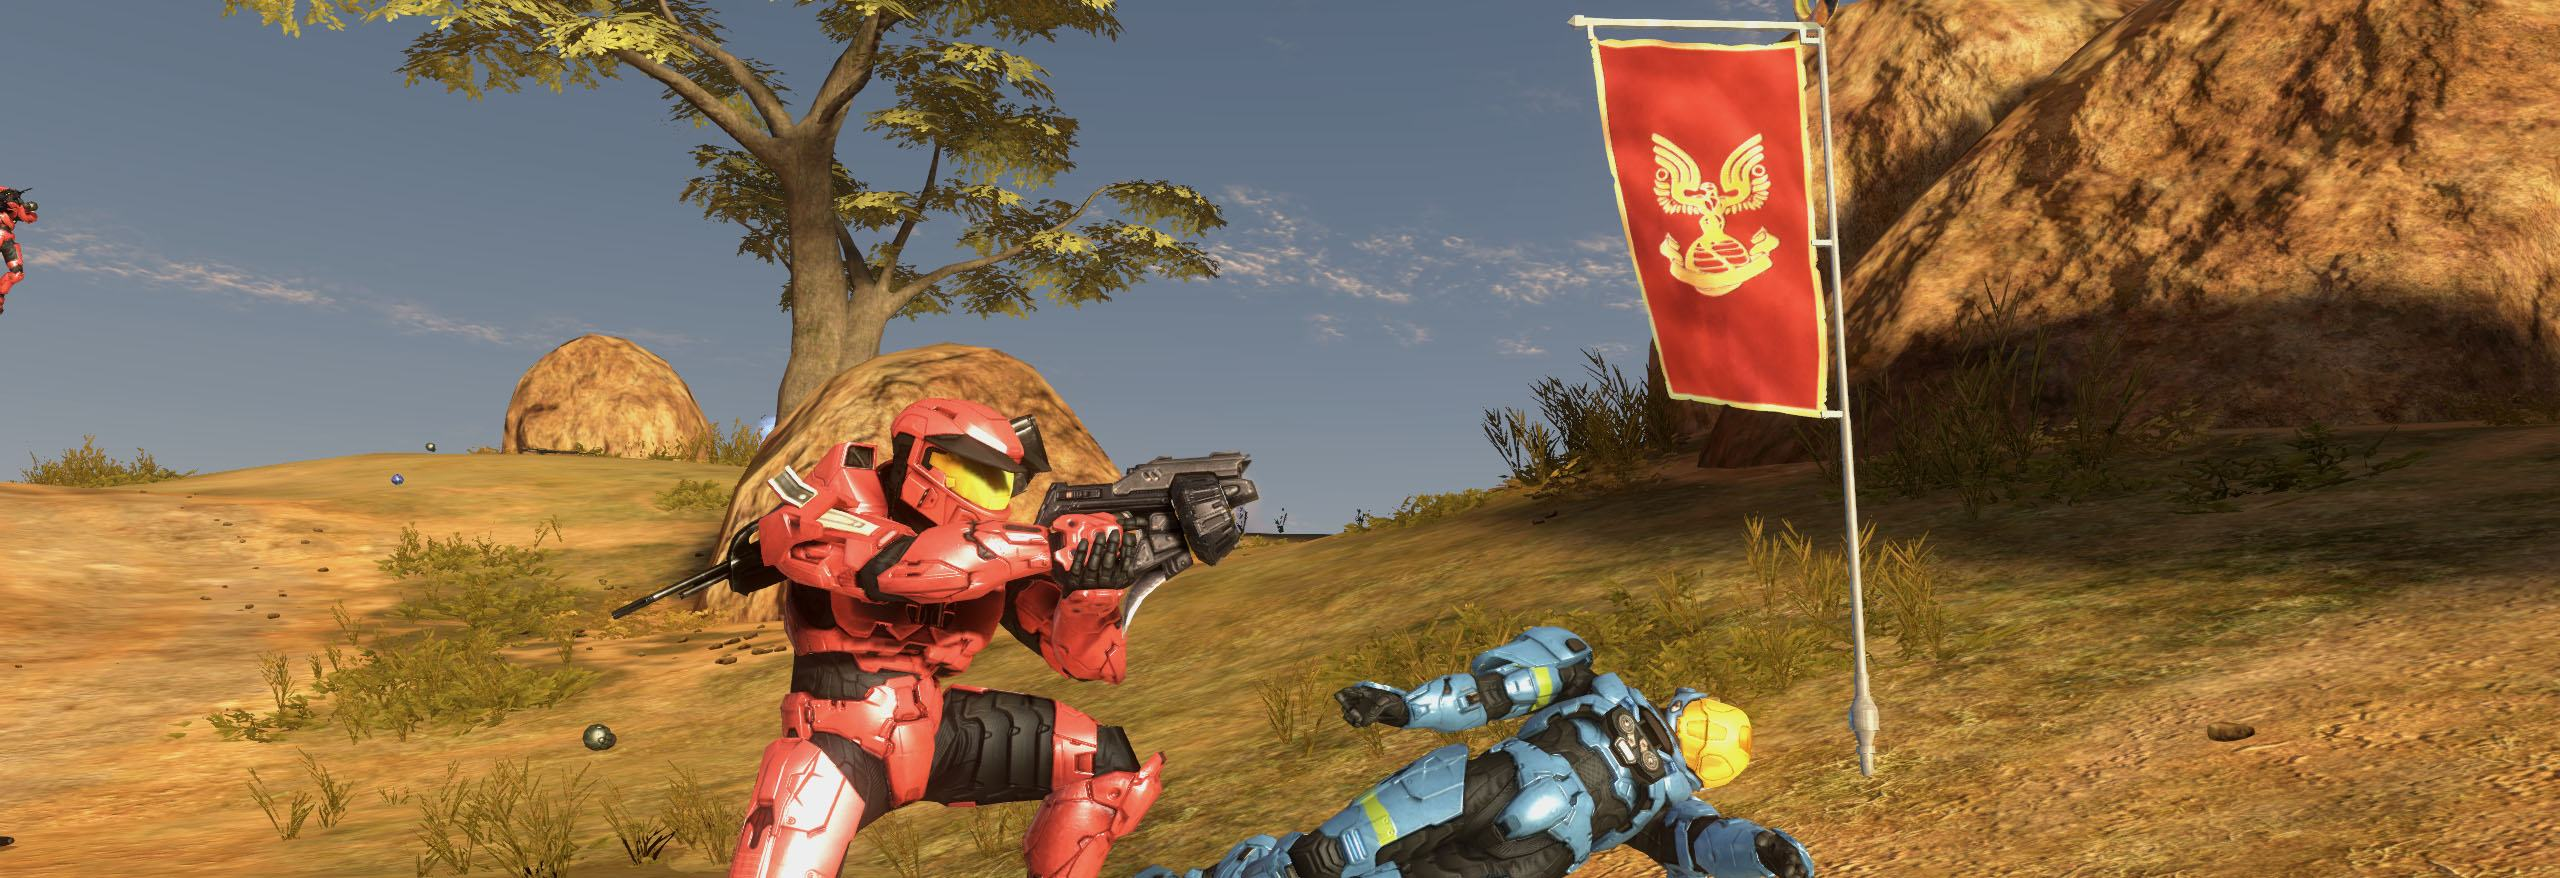 Halo__The_Master_Chief_Collection_7_20_2020_11_24_54_PM.jpg